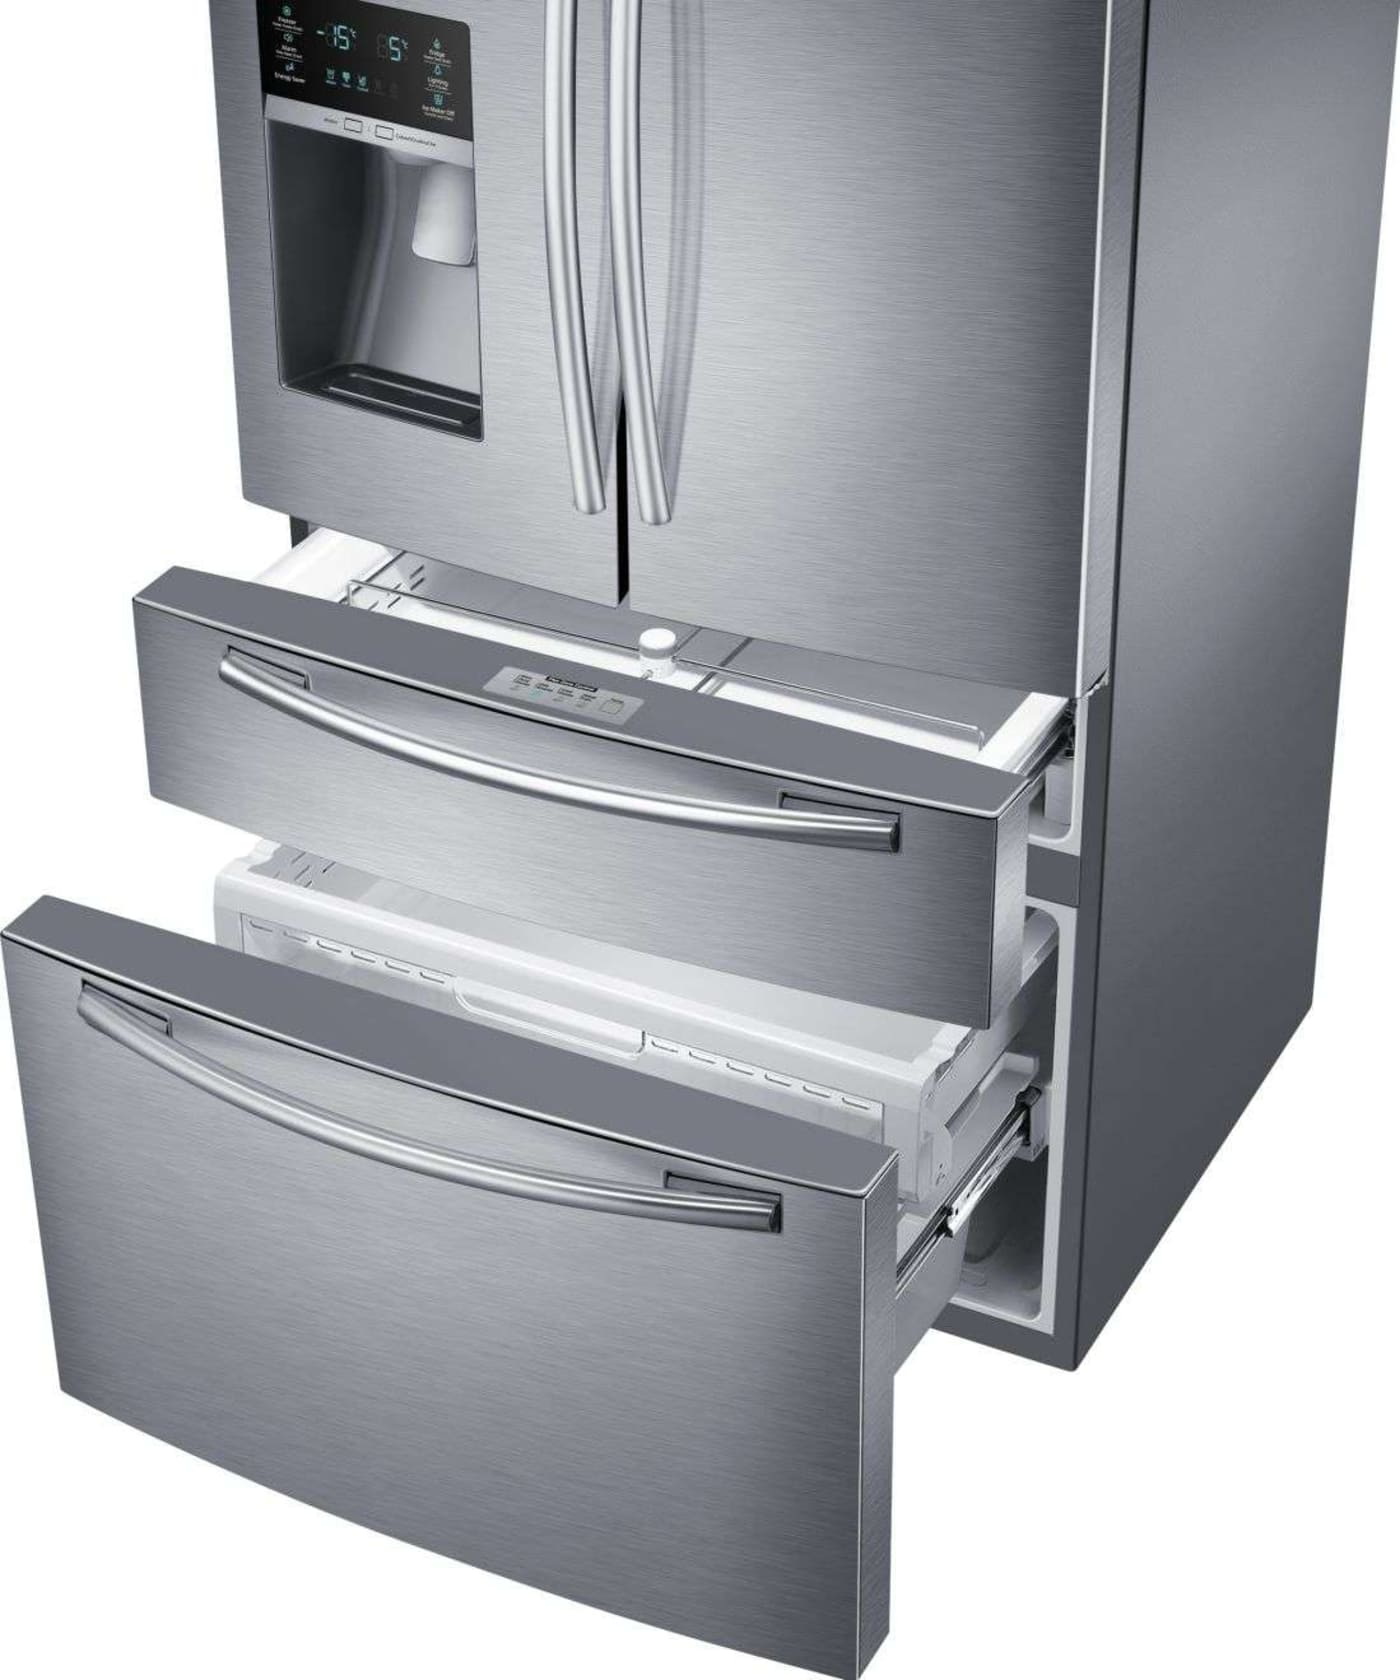 Samsung Rf25hmedbsr 33 Quot 24 7 Cu Ft Stainless Steel